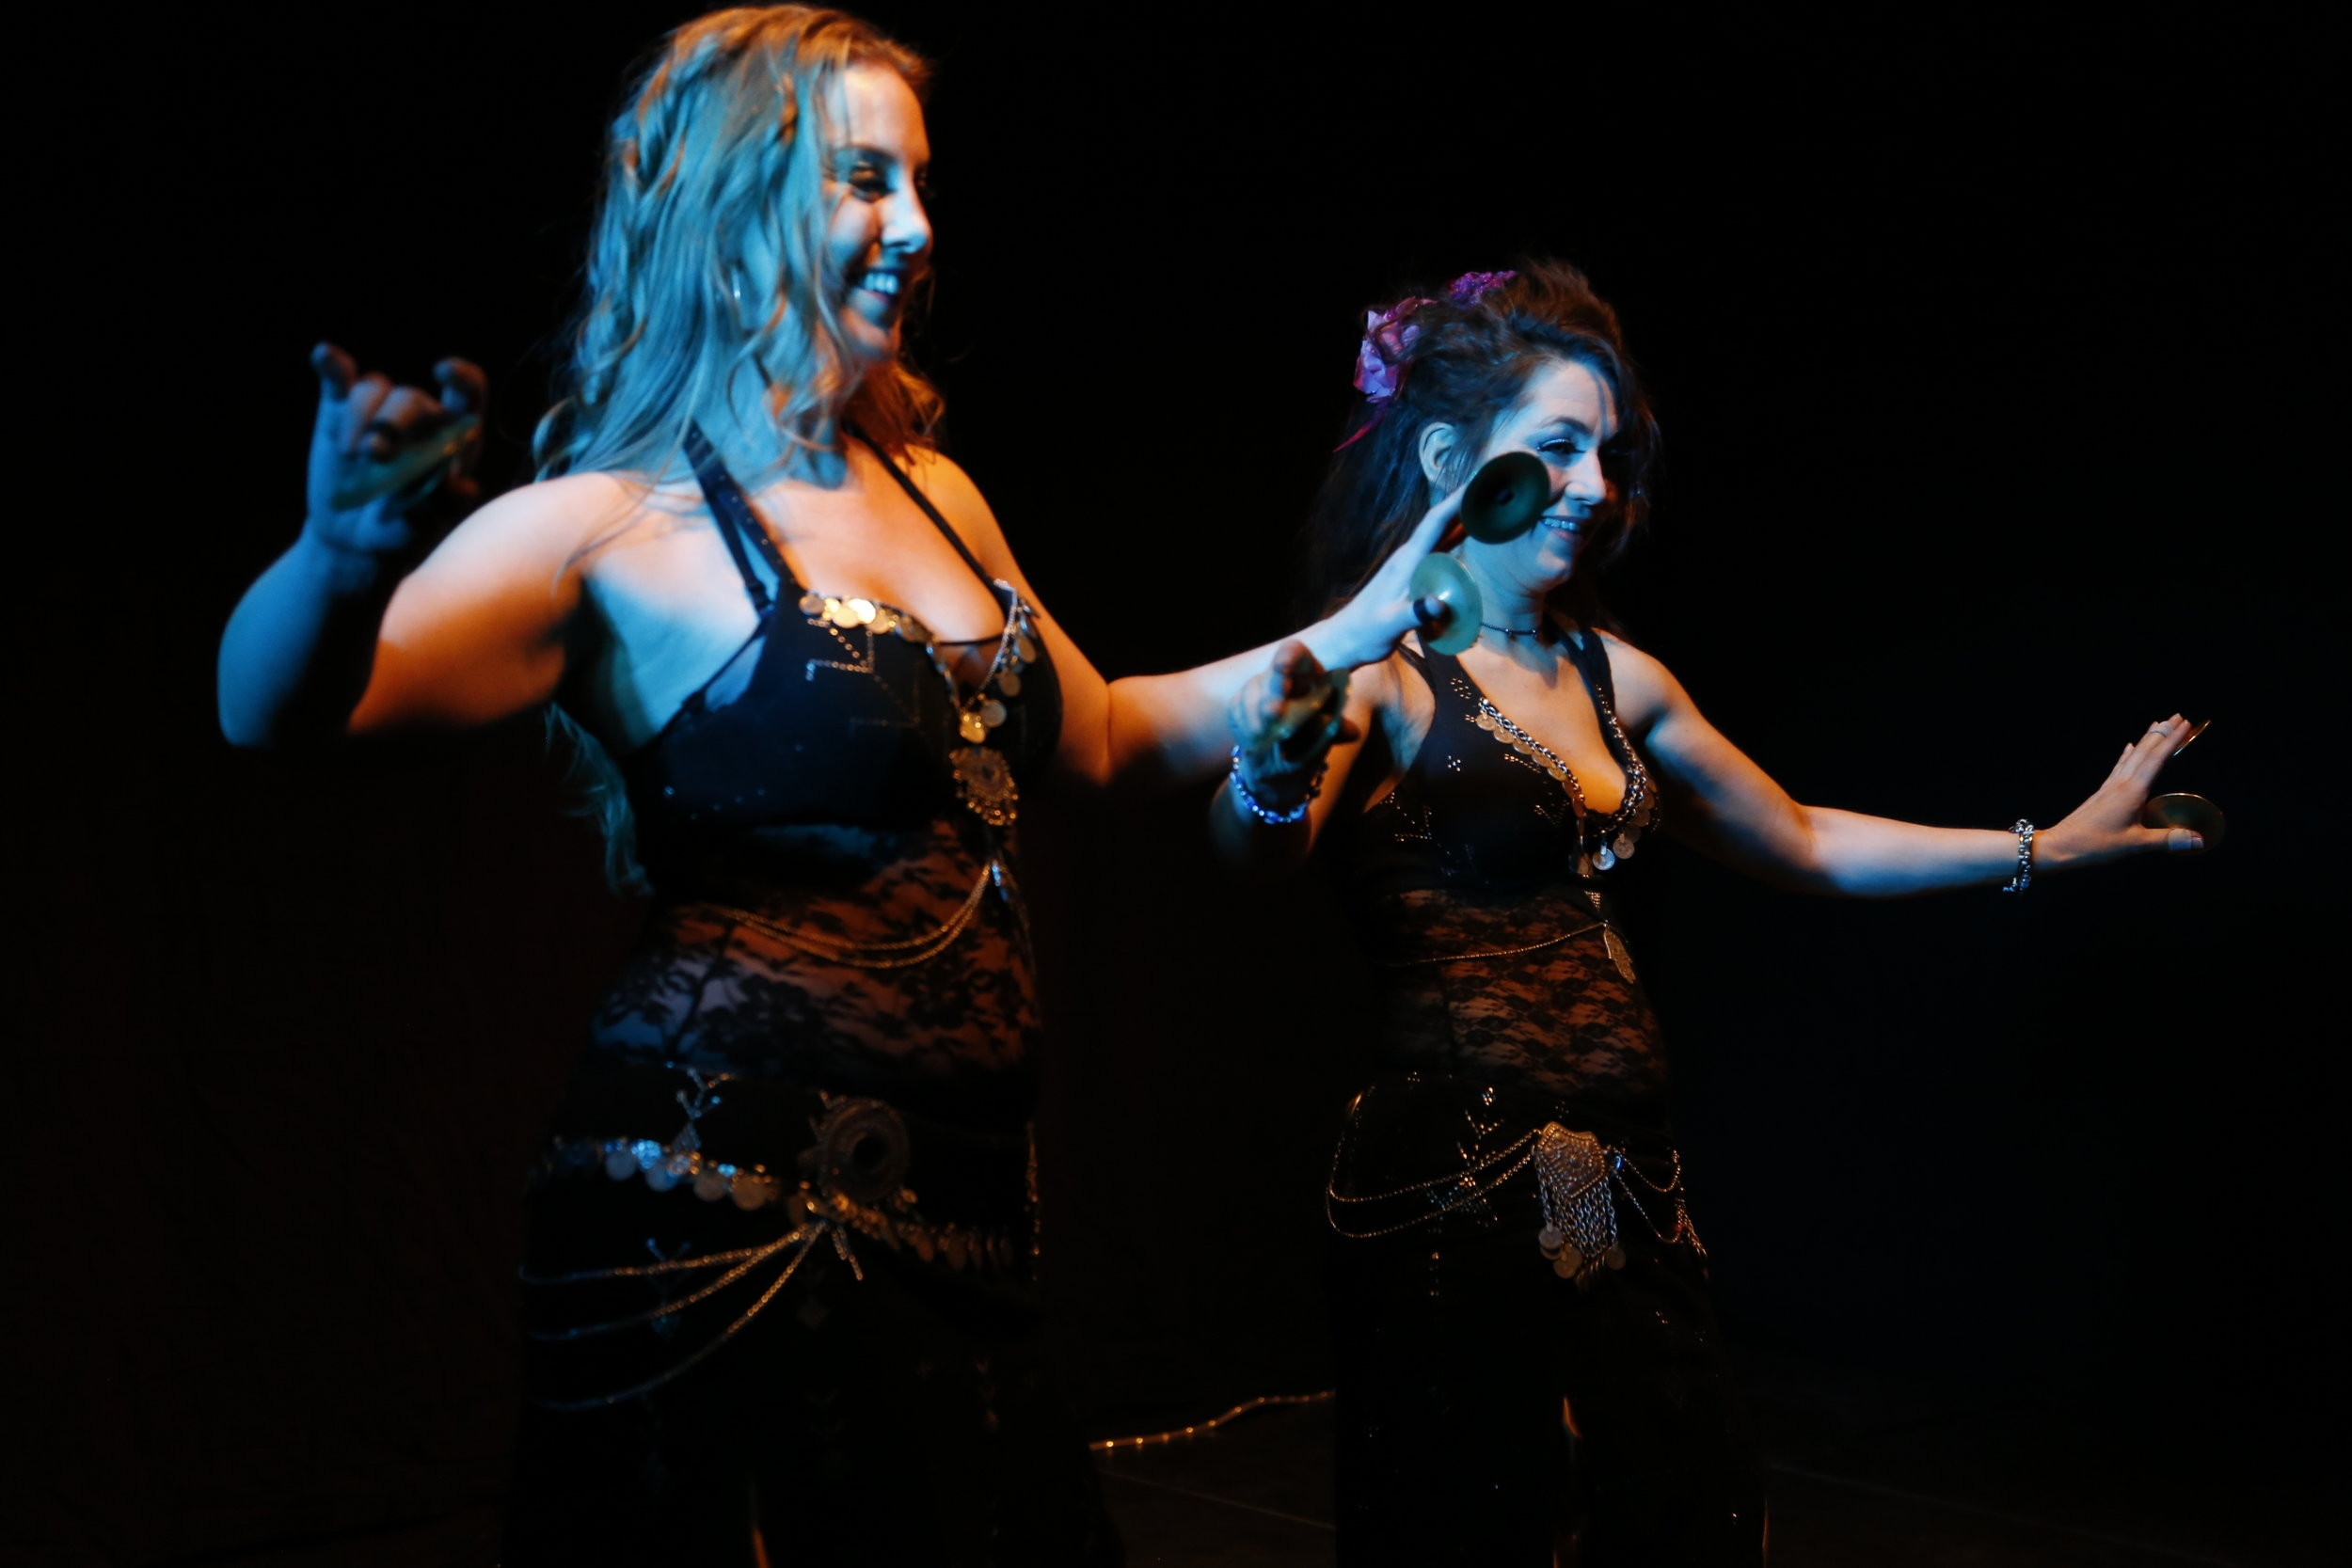 Maria Oriental & Ülkü - Belly Dance at Jugal Bandhi show at the Museum of Far Eastern Antiquities. Stockholm, December 2015.